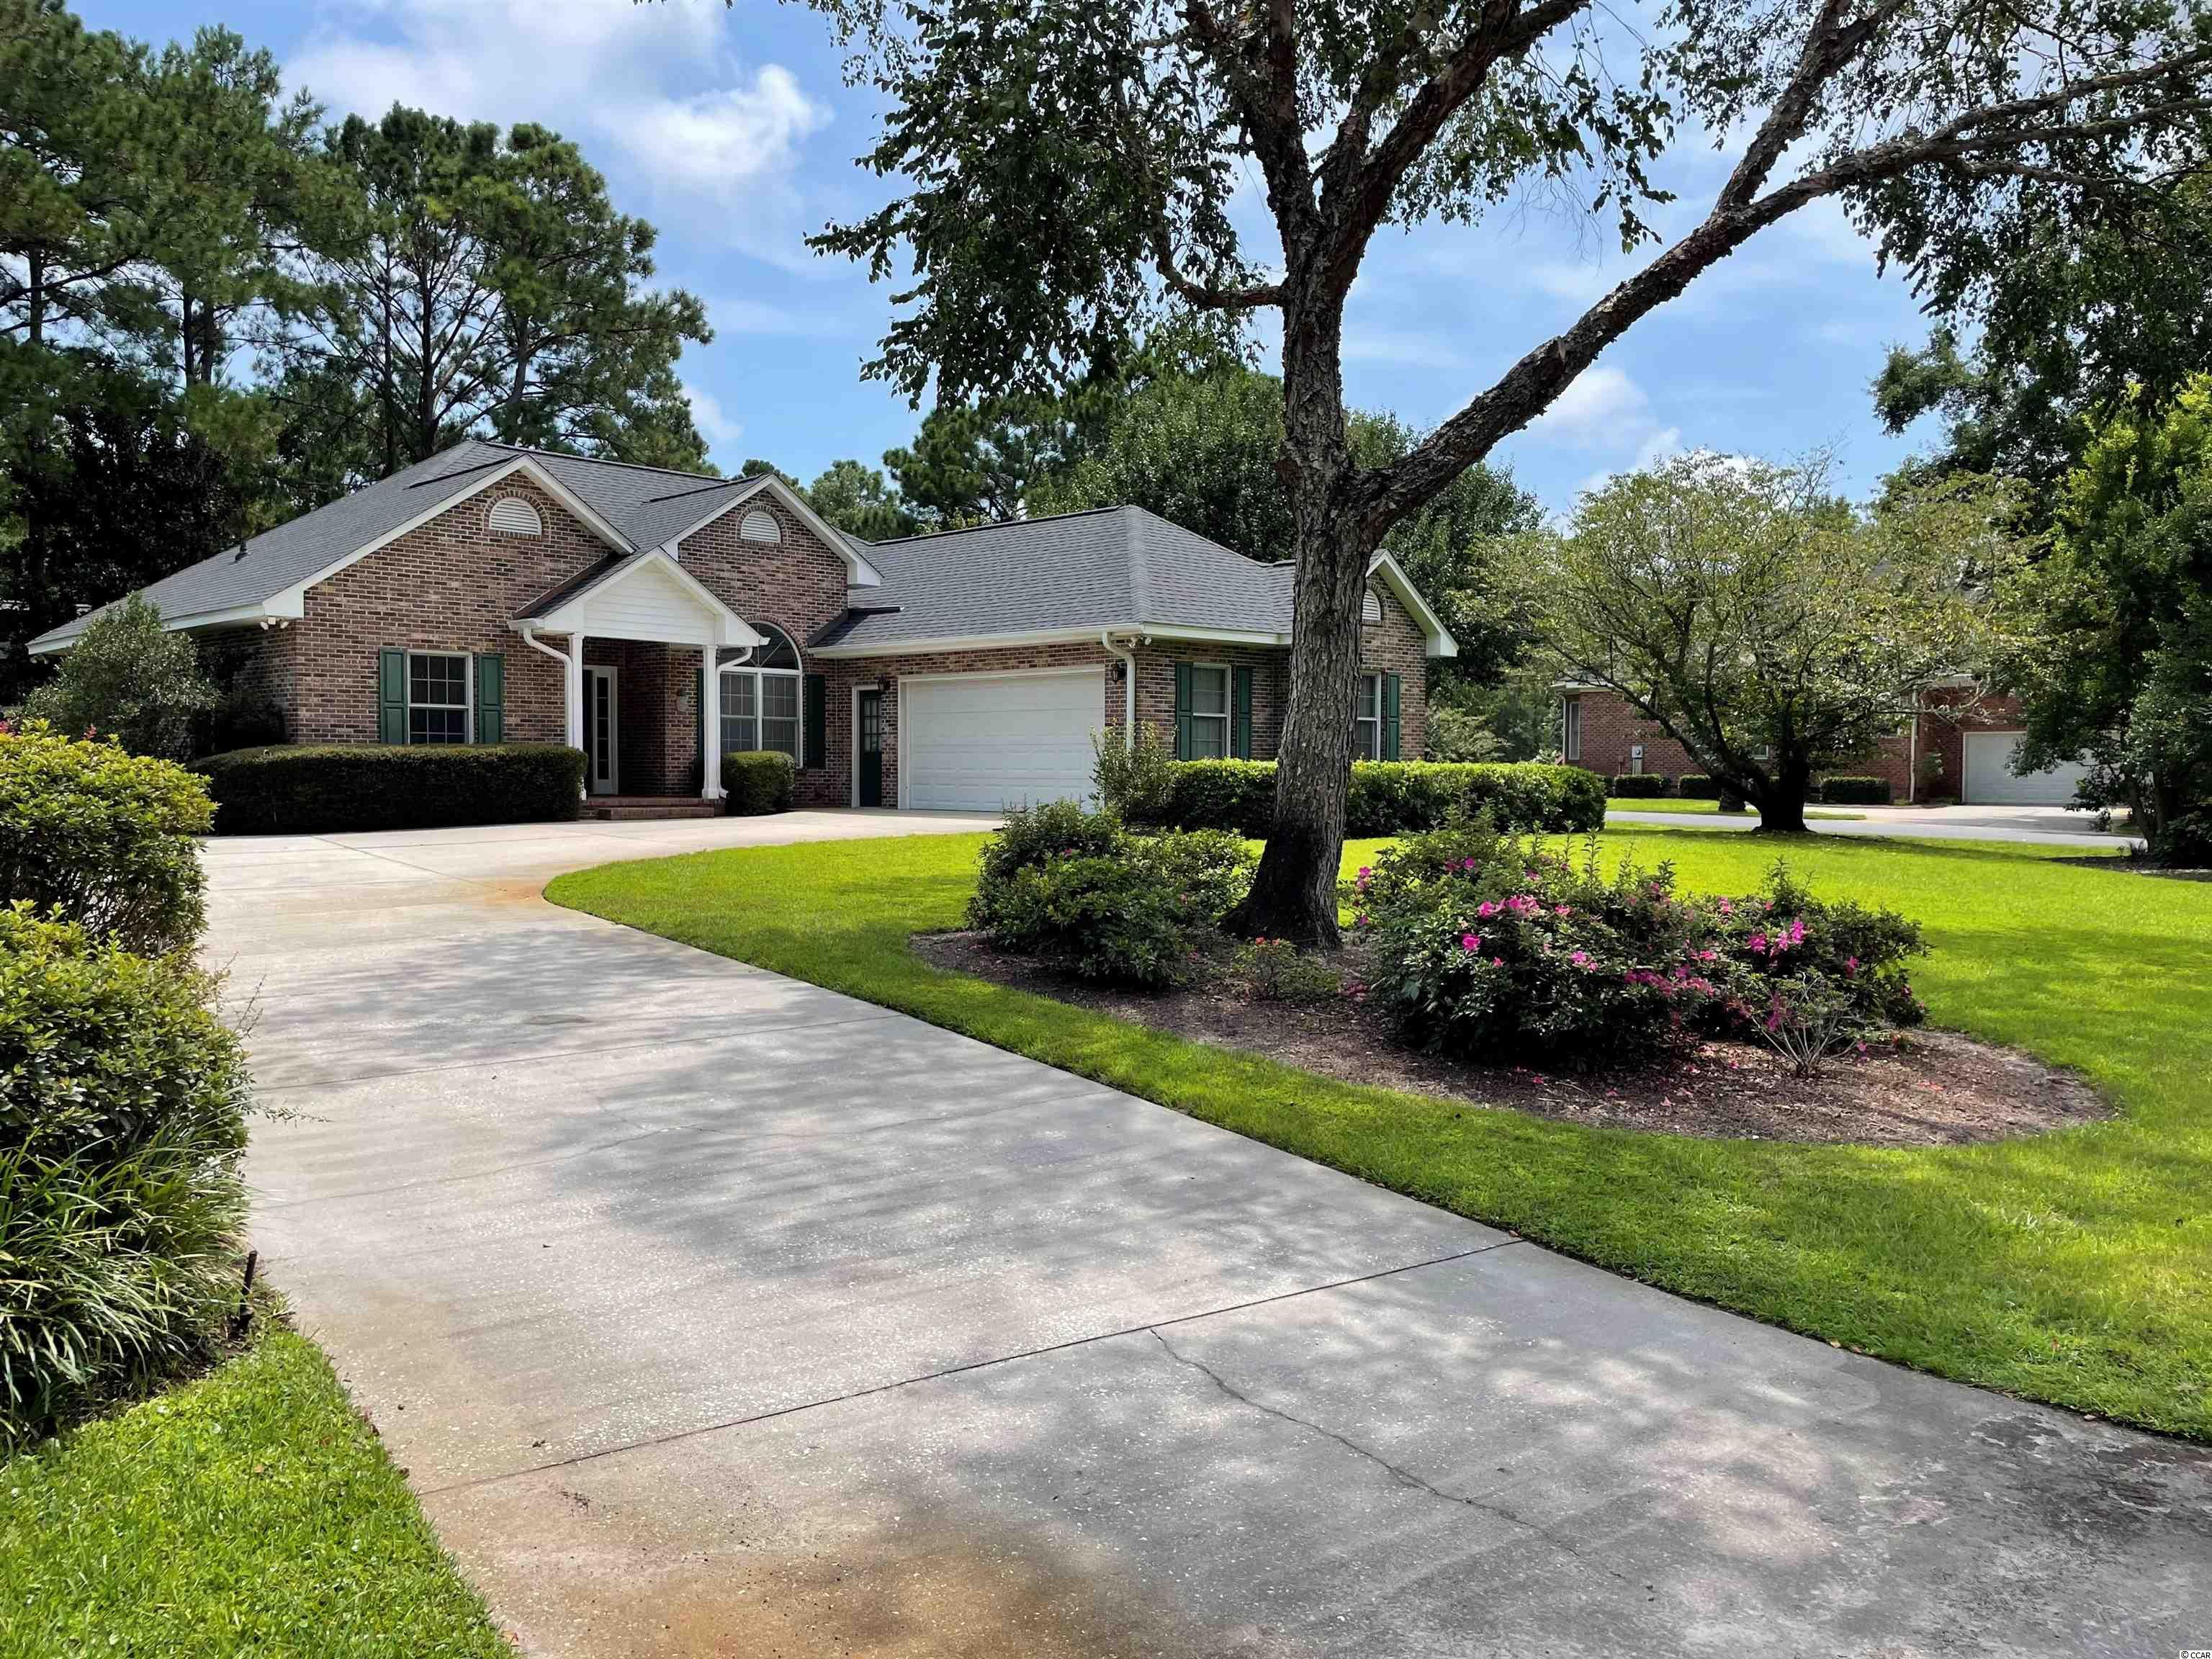 All brick home boasts single-level living within the lovely gated community of River Club. Freshly painted in neutral beach tones, this home is move-in ready. New HVAC and roof in 2020. Floor plan offers 3 bedrooms, 2 full baths, breakfast nook, fireplace in living room and side-loading 2-car garage. Spacious yard with mature landscaping. Long-established golfing community offers a large private pool, club house and golf course. Litchfield by the Sea gives homeowners easy passage to the beach by bicycle, golf cart or car and provides parking, restrooms, outdoor showers and an extensive sundeck surrounding the oceanfront club house. Miles of bike trails pass right by the back gate of River Club, perfect for exploring Murrells Inlet, Huntington Beach State Park, Brookgreen Gardens and Pawleys Island. Easy commute to Myrtle Beach or Charleston. Convenient to medical facilities, schools, restaurants and shops.